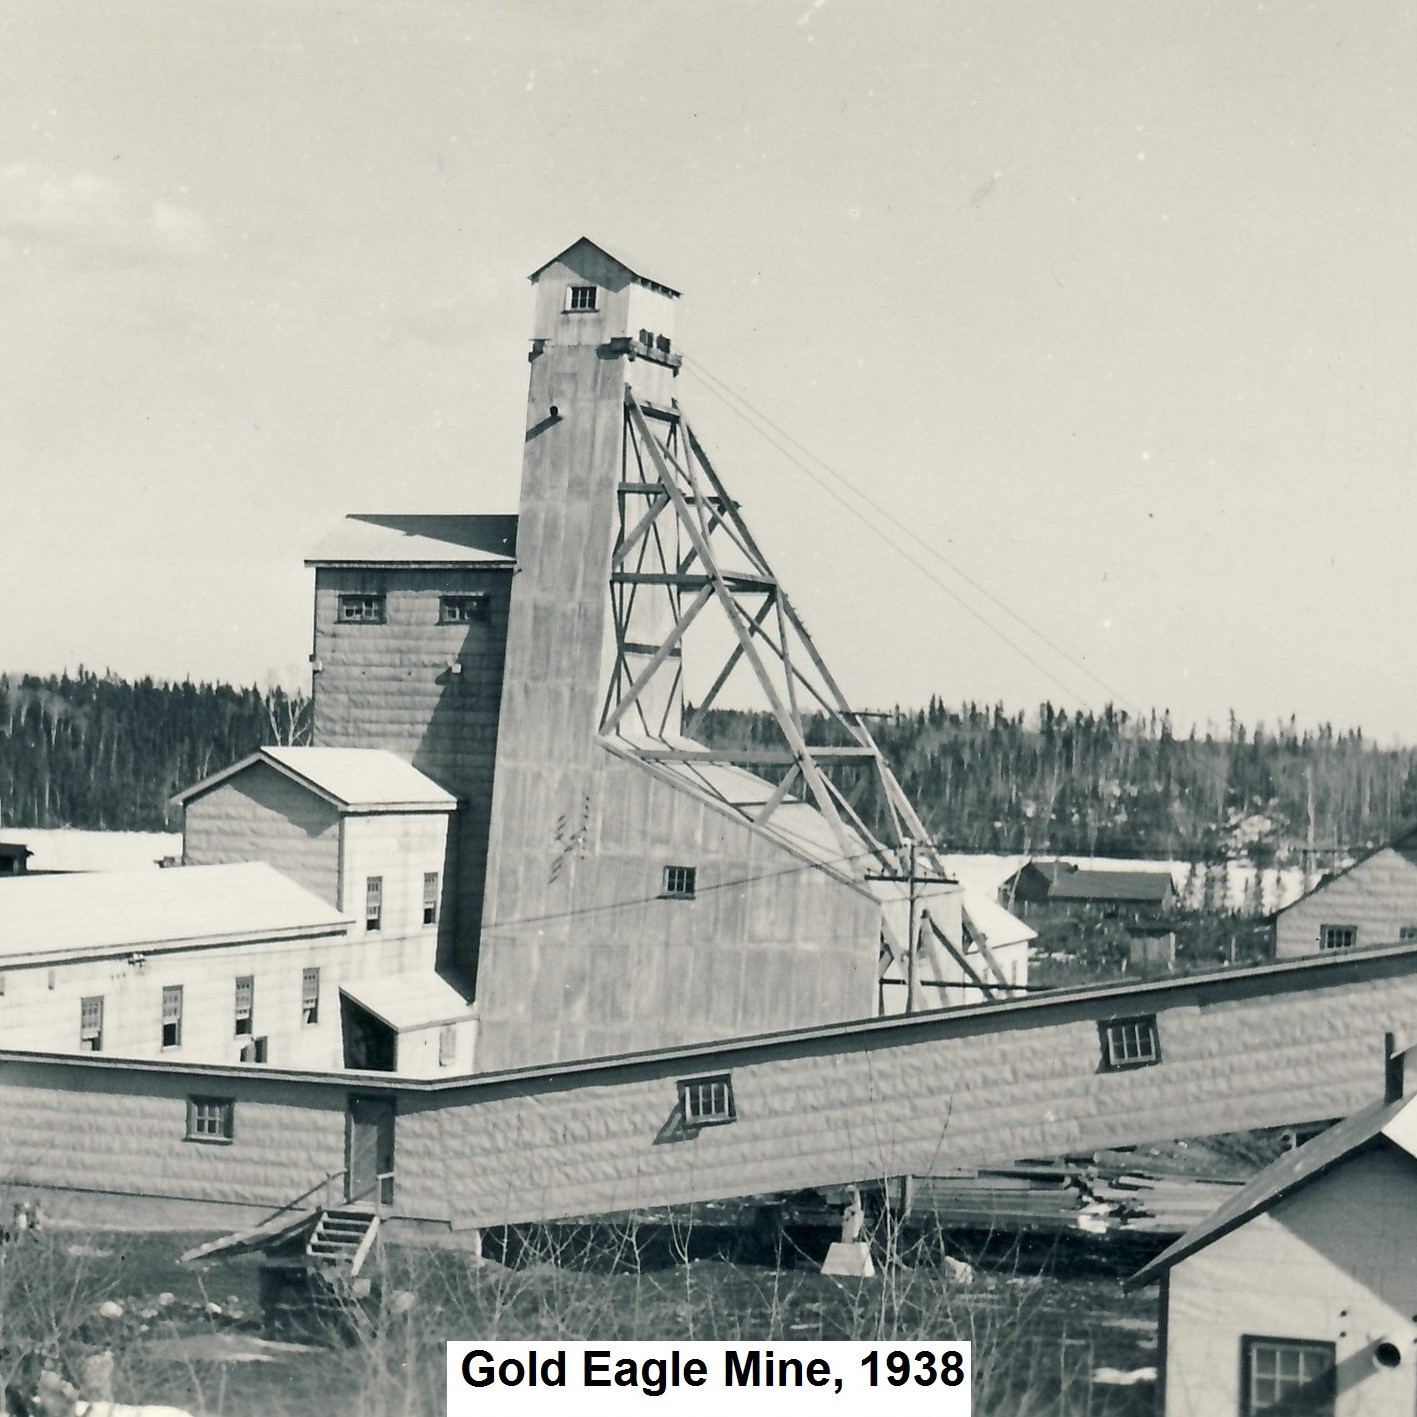 Gold Eagle Mine, Mckenzie Island